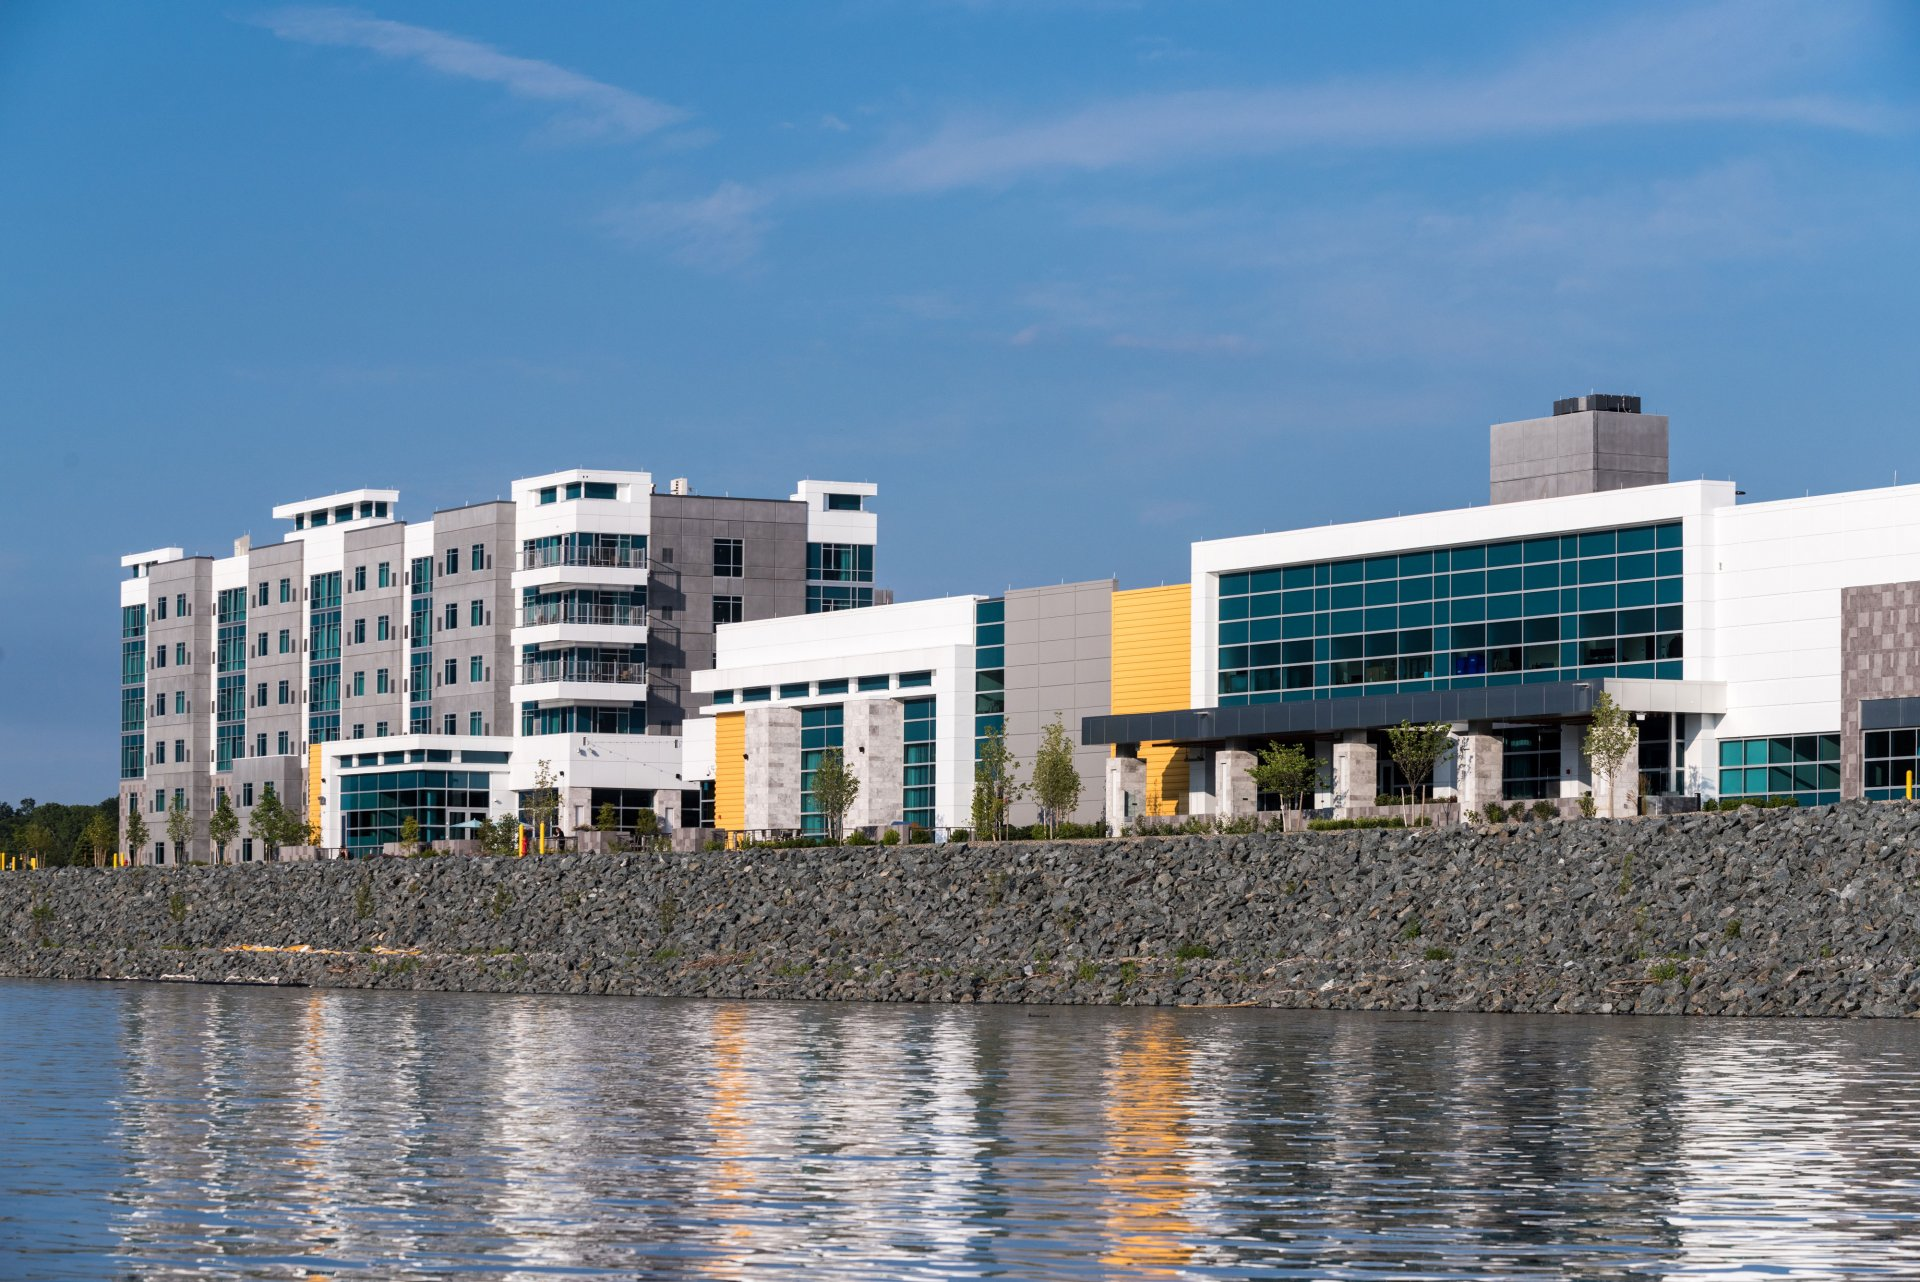 Rivers Casino & Resort at Mohawk Harbor